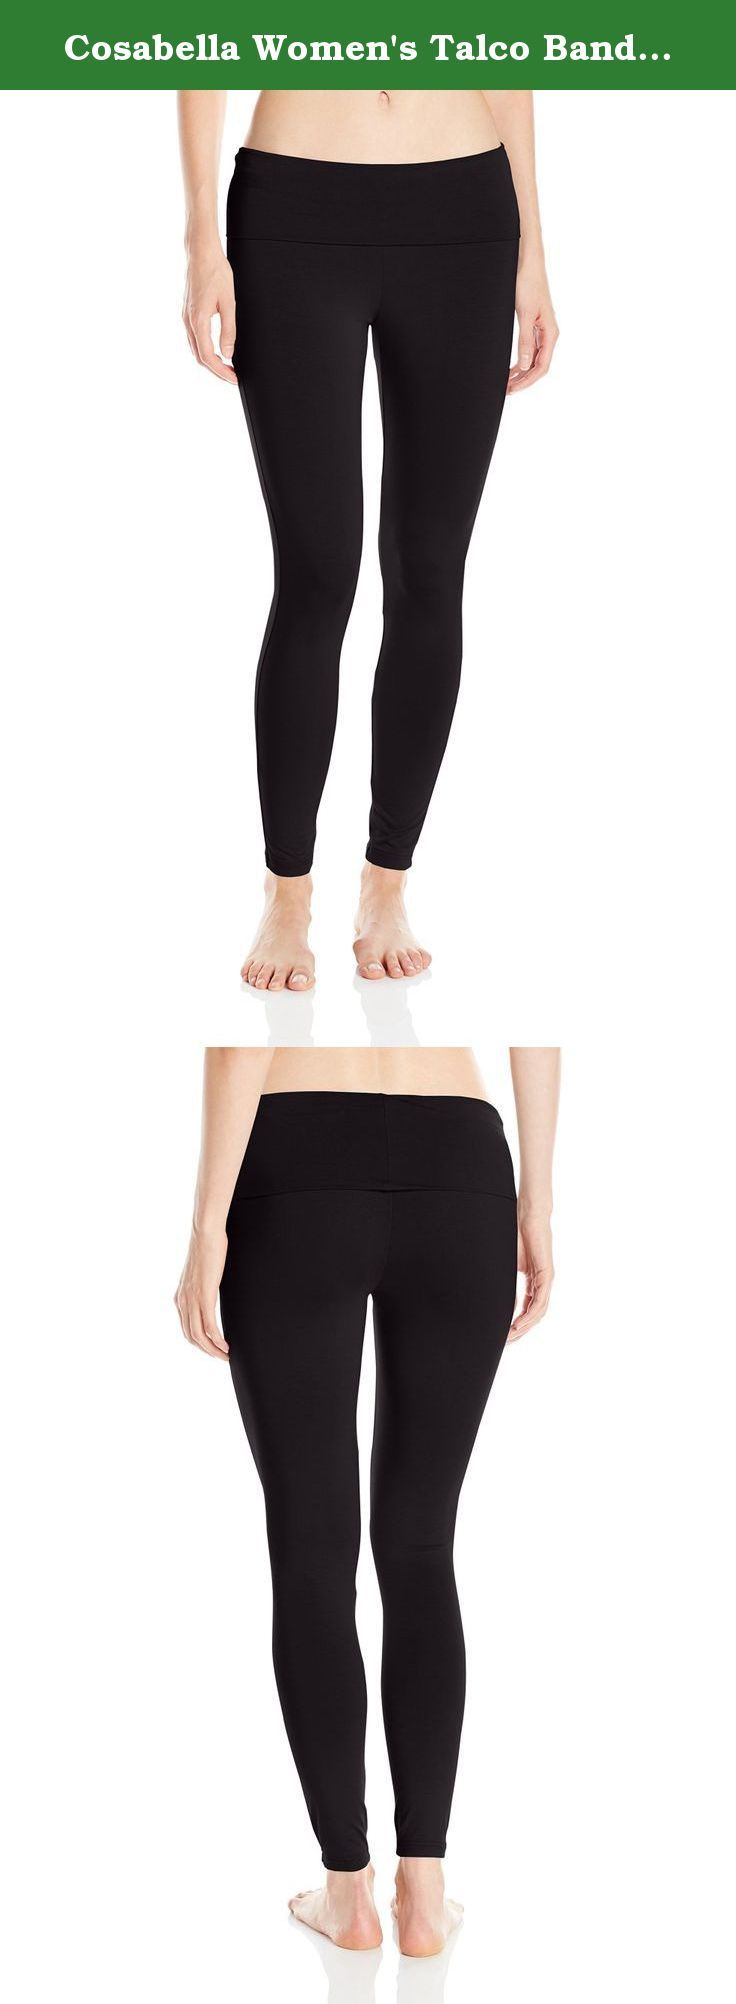 Cosabella Women's Talco Banded Legging, Black, Large. Designed in our classic rich viscose jersey the talco legging features a banded waistband.